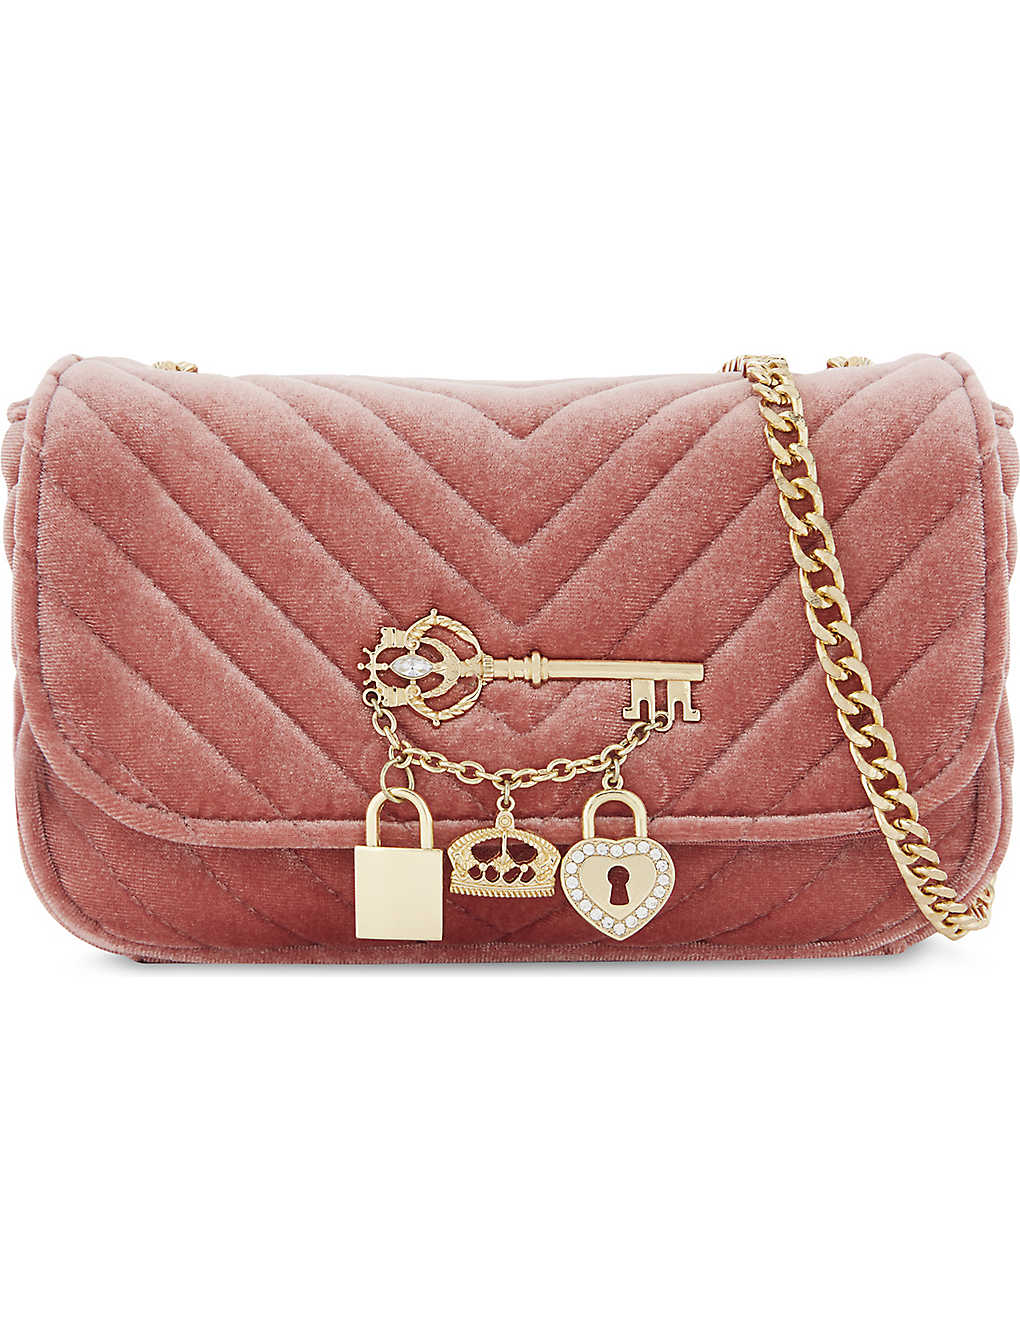 9676f7bbf97 ALDO - Griclya quilted velvet cross-body bag | Selfridges.com